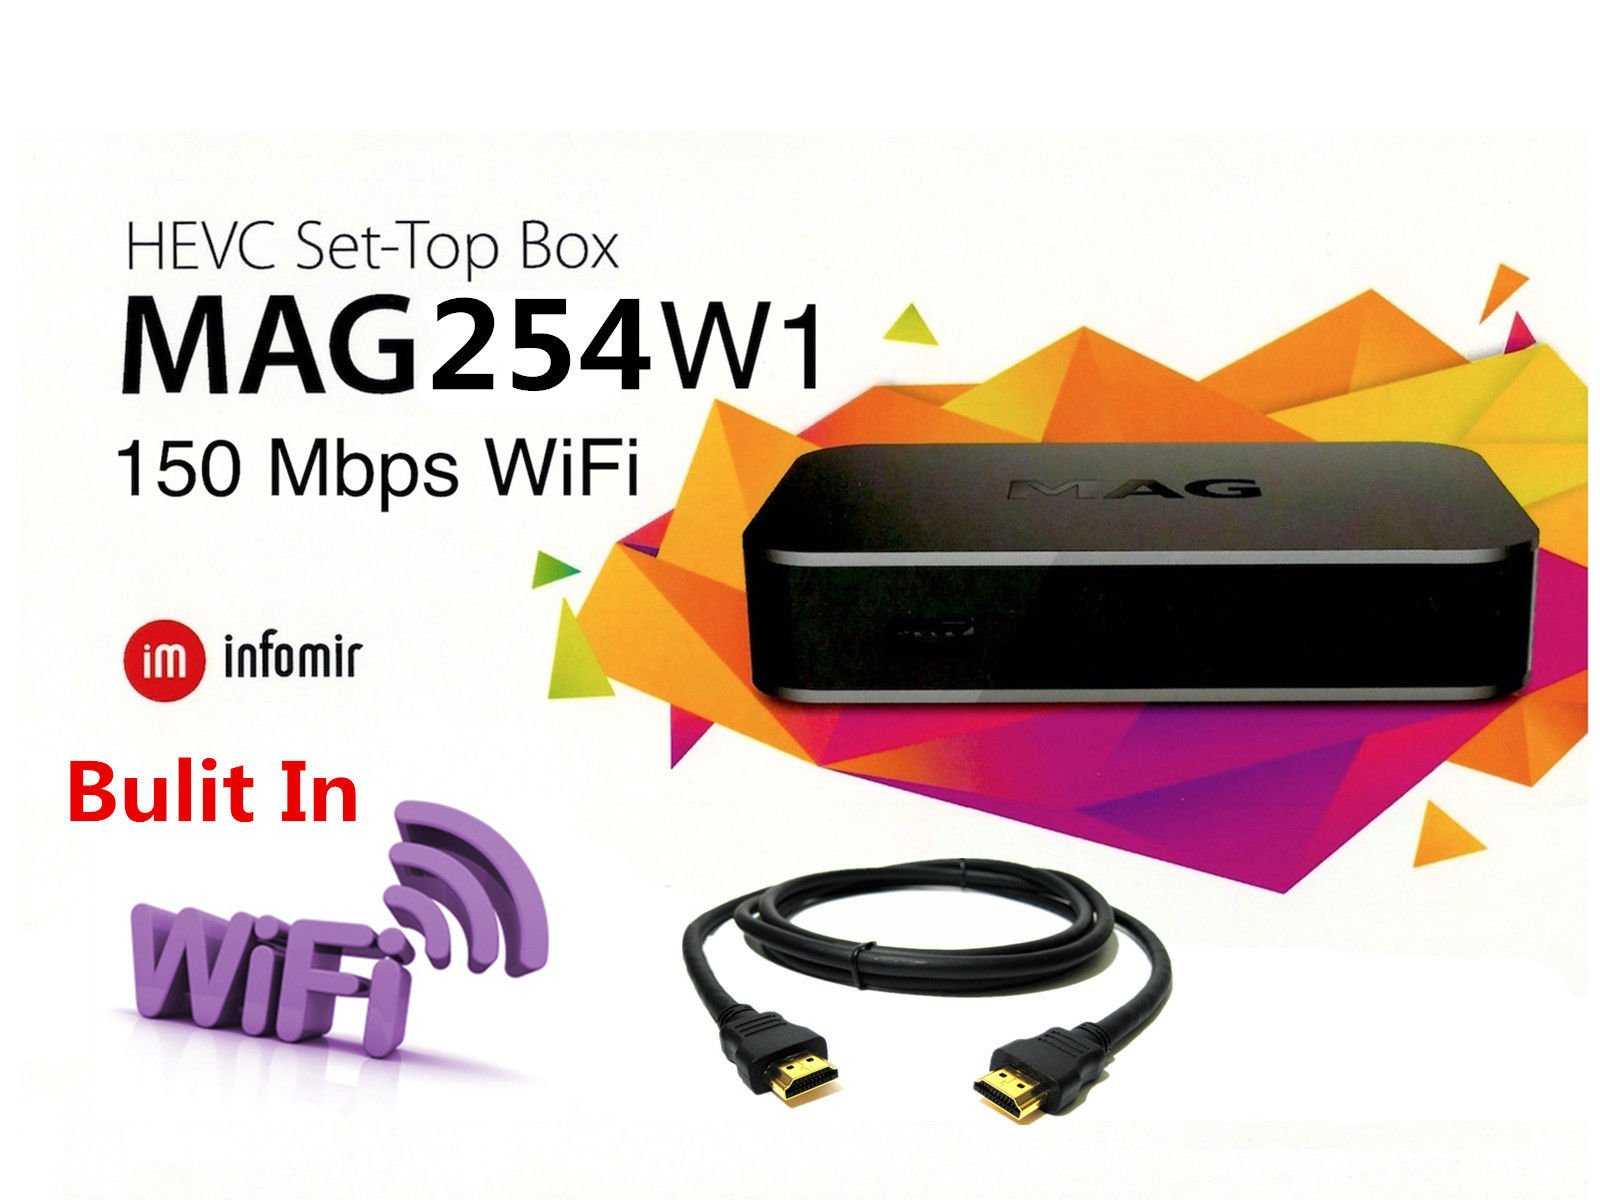 MAG 254 W1 Multimedia Player With Built-In 150Mbps Wi-Fi and HDMI Cable by Infomir